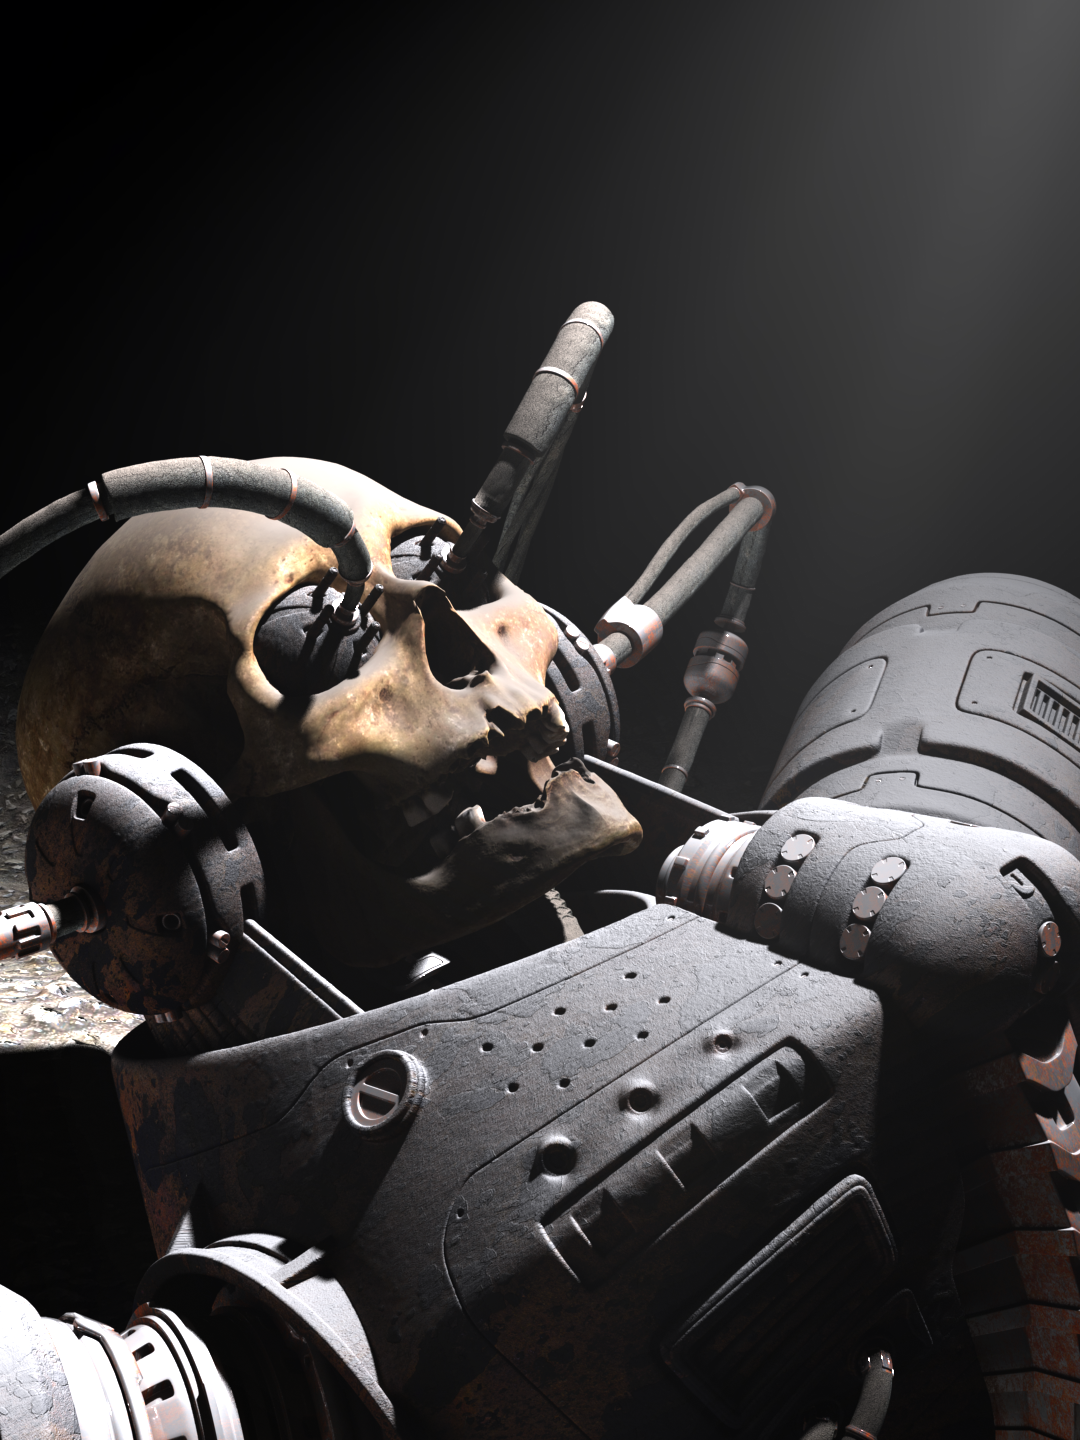 Found in a cave on a small body of the Tucana M system, the artifact is believed to be a cyborg soldier involved during the final Zone War. Though, it is worth mentionning that the only organic part of this type of unit is its original human skull.